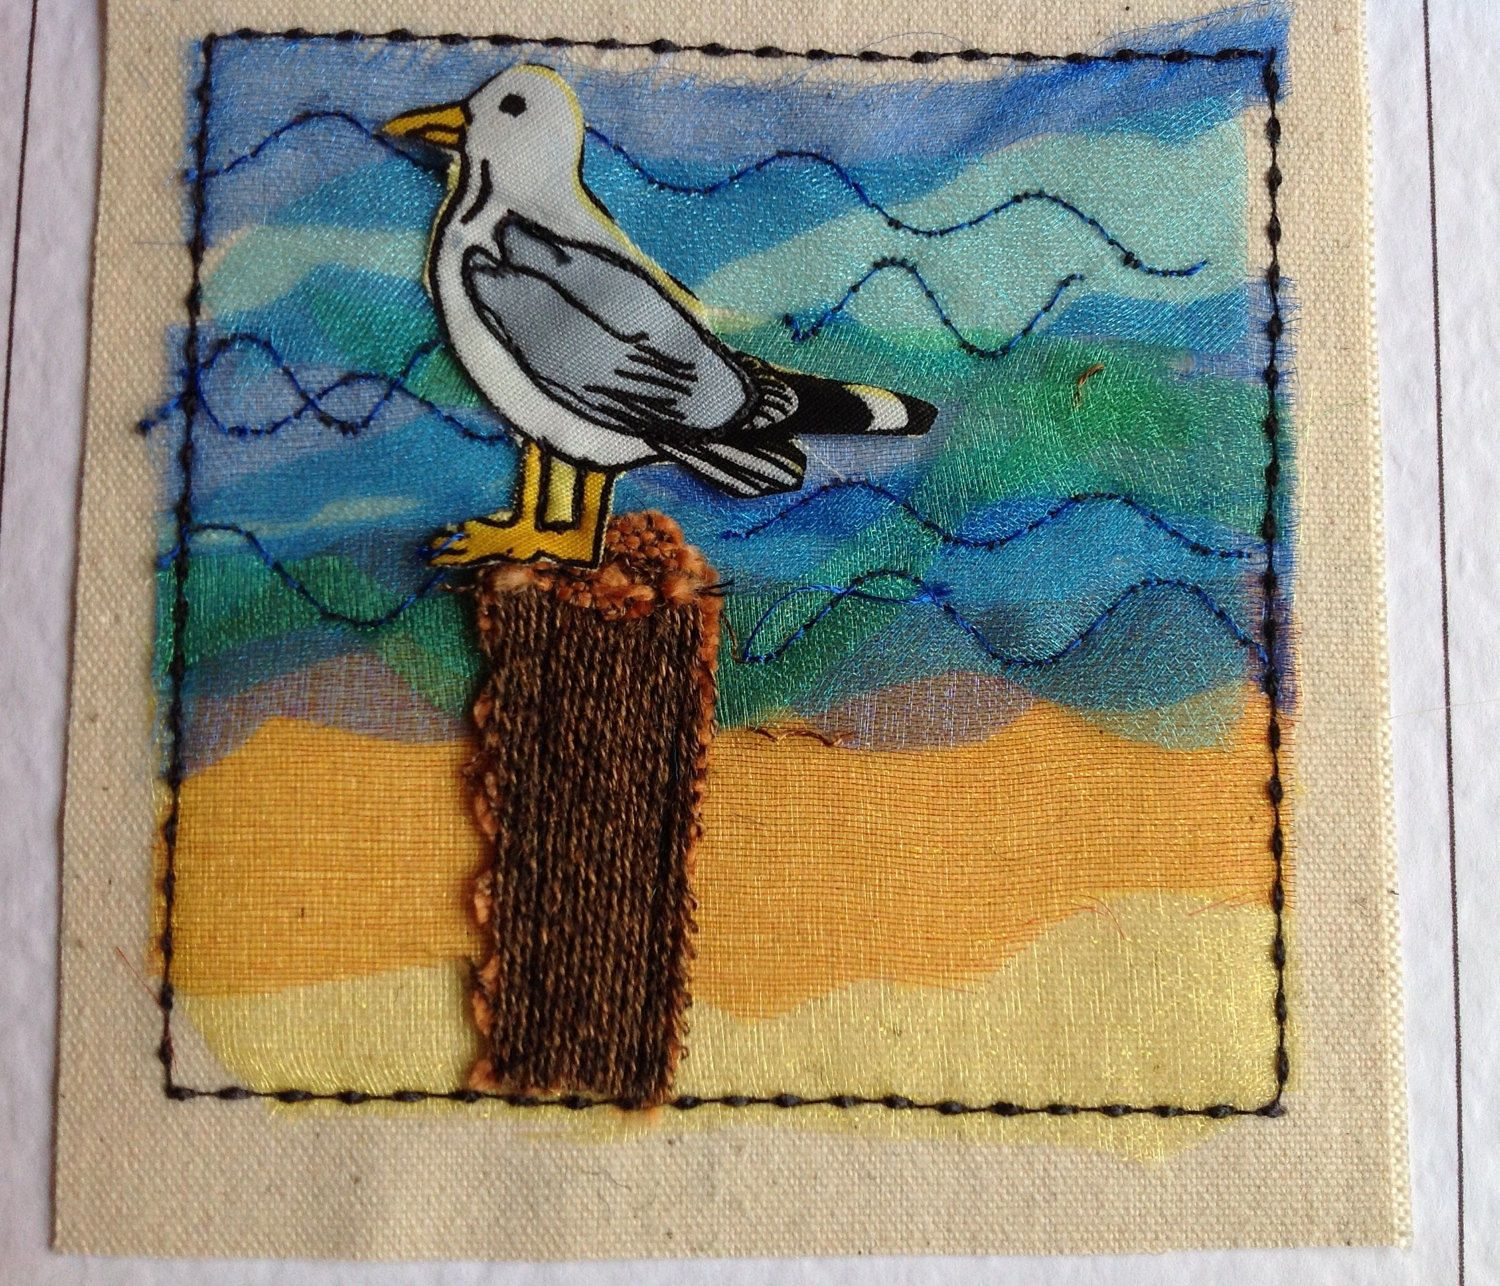 Hand made seagull card for Birthday Thank you Get well Fathers day. Textile card personalised with your words printed at the top of the card by FiddlethreadStudio on Etsy